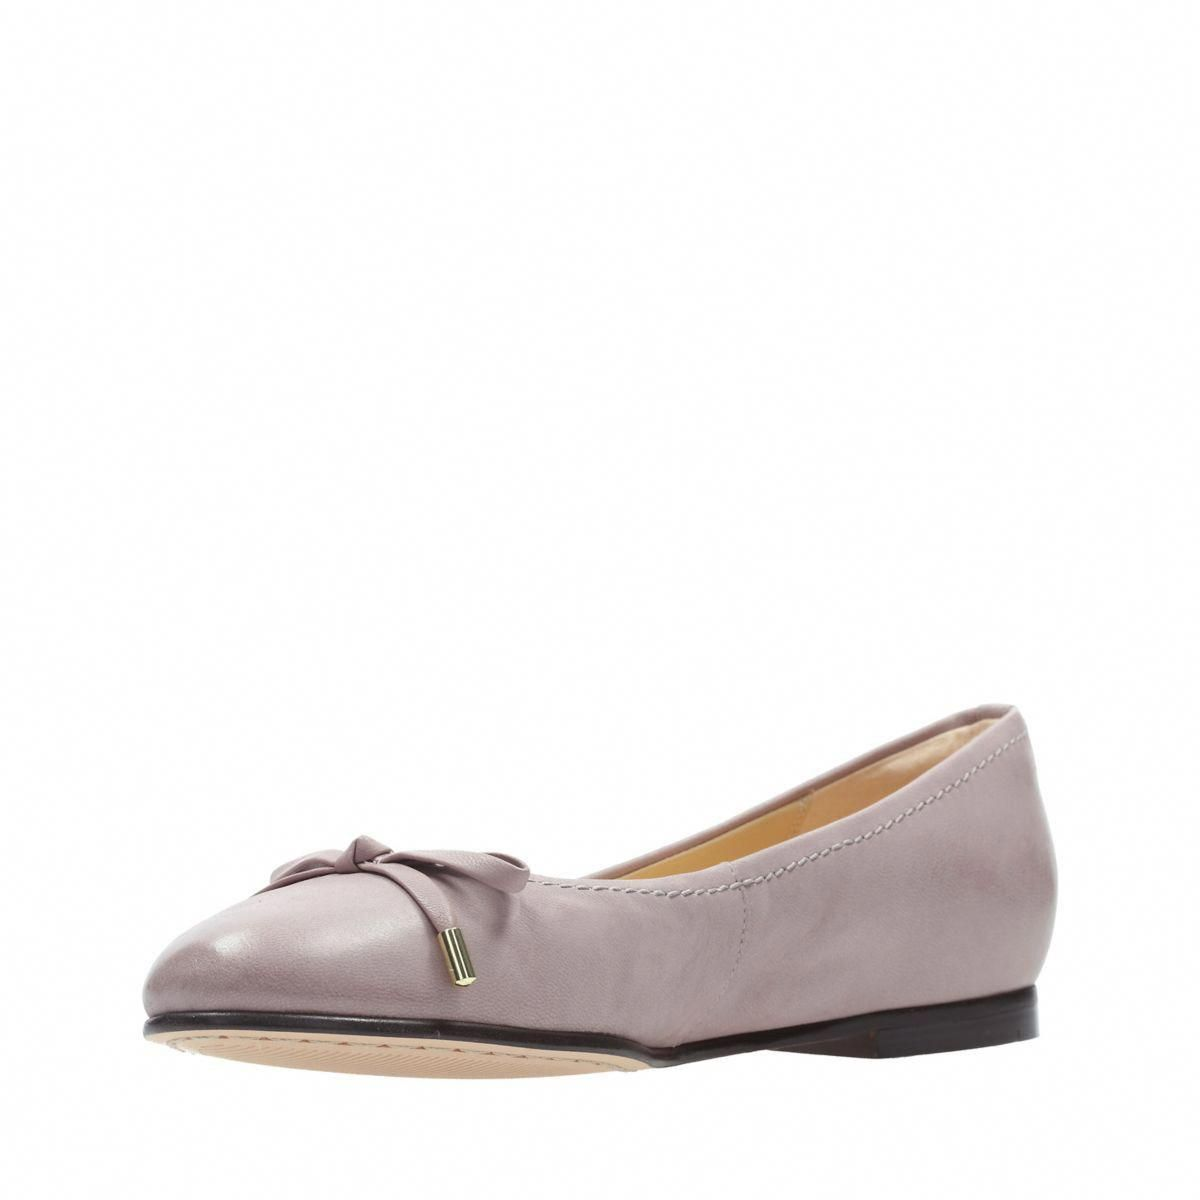 3a3f8a0f853 Clarks Grace Lily - Womens Shoes Lilac 7.5  womensshoes